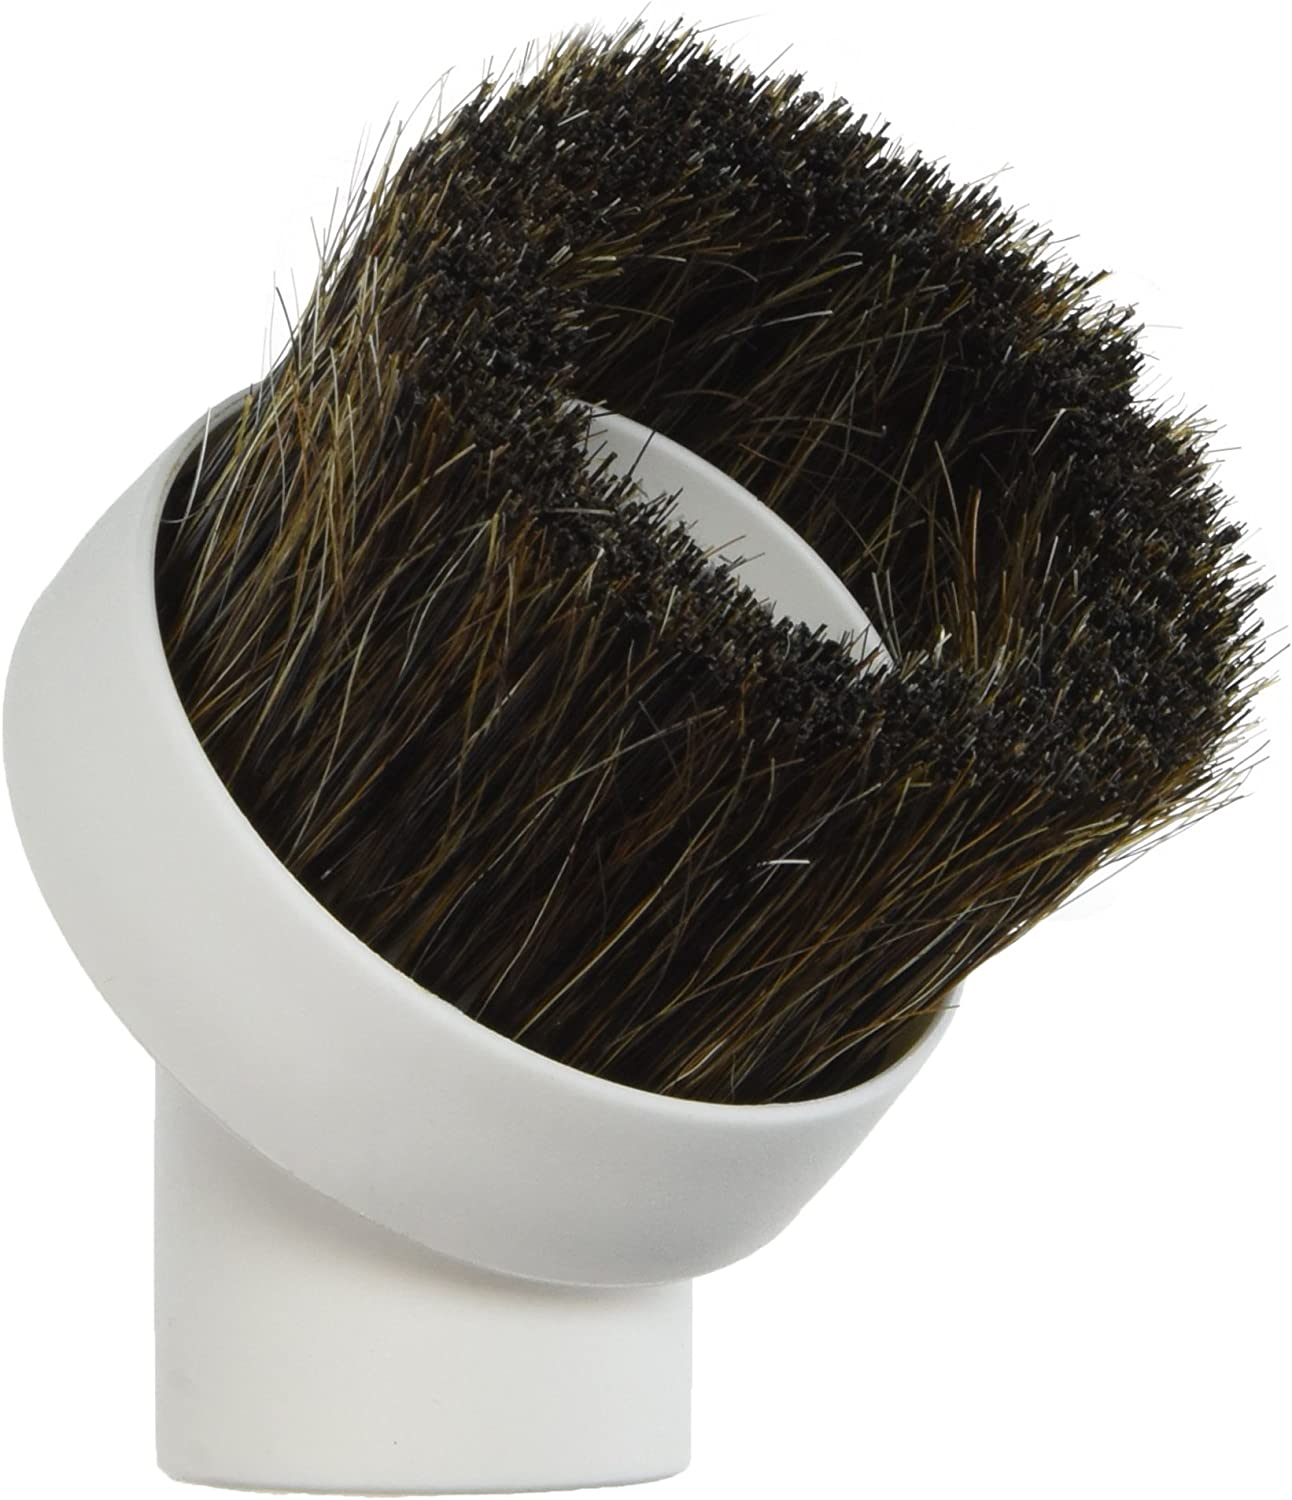 1st Choice 1 X Deluxe Replacement Dusting Brush, White, Brown